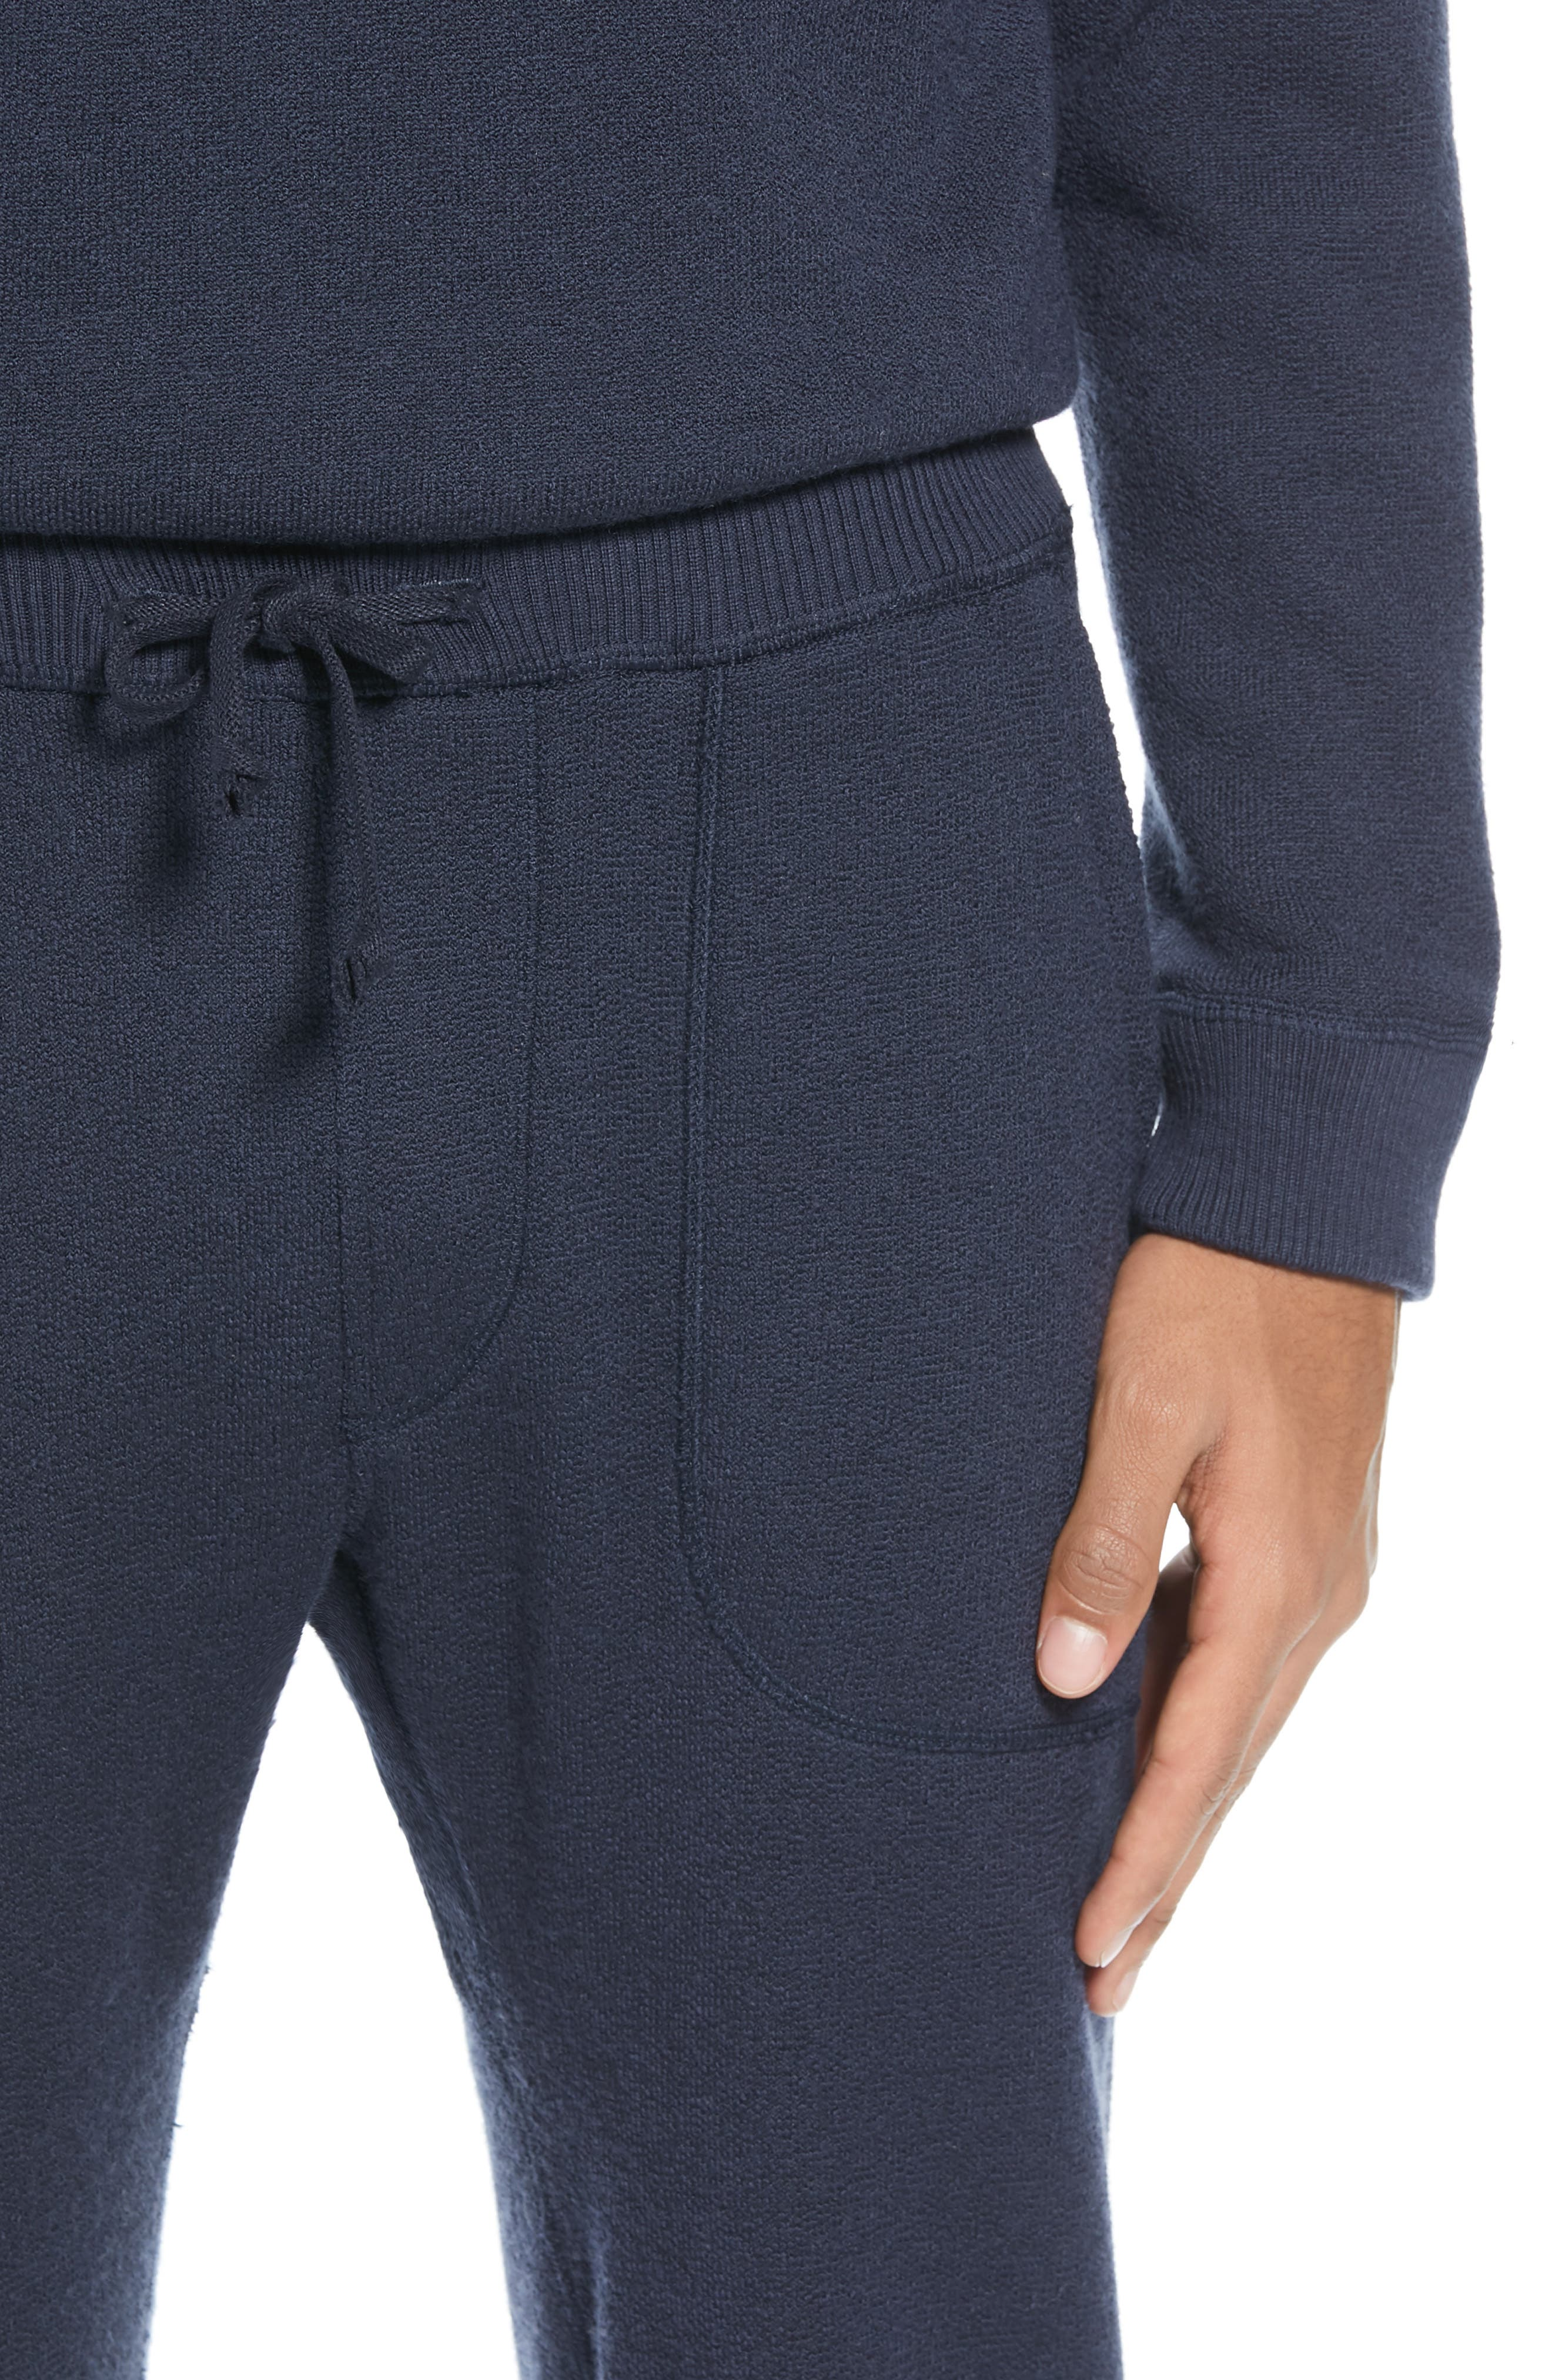 BEST MADE CO.,                             The Merino Wool Fleece Sweatpants,                             Alternate thumbnail 5, color,                             NAVY